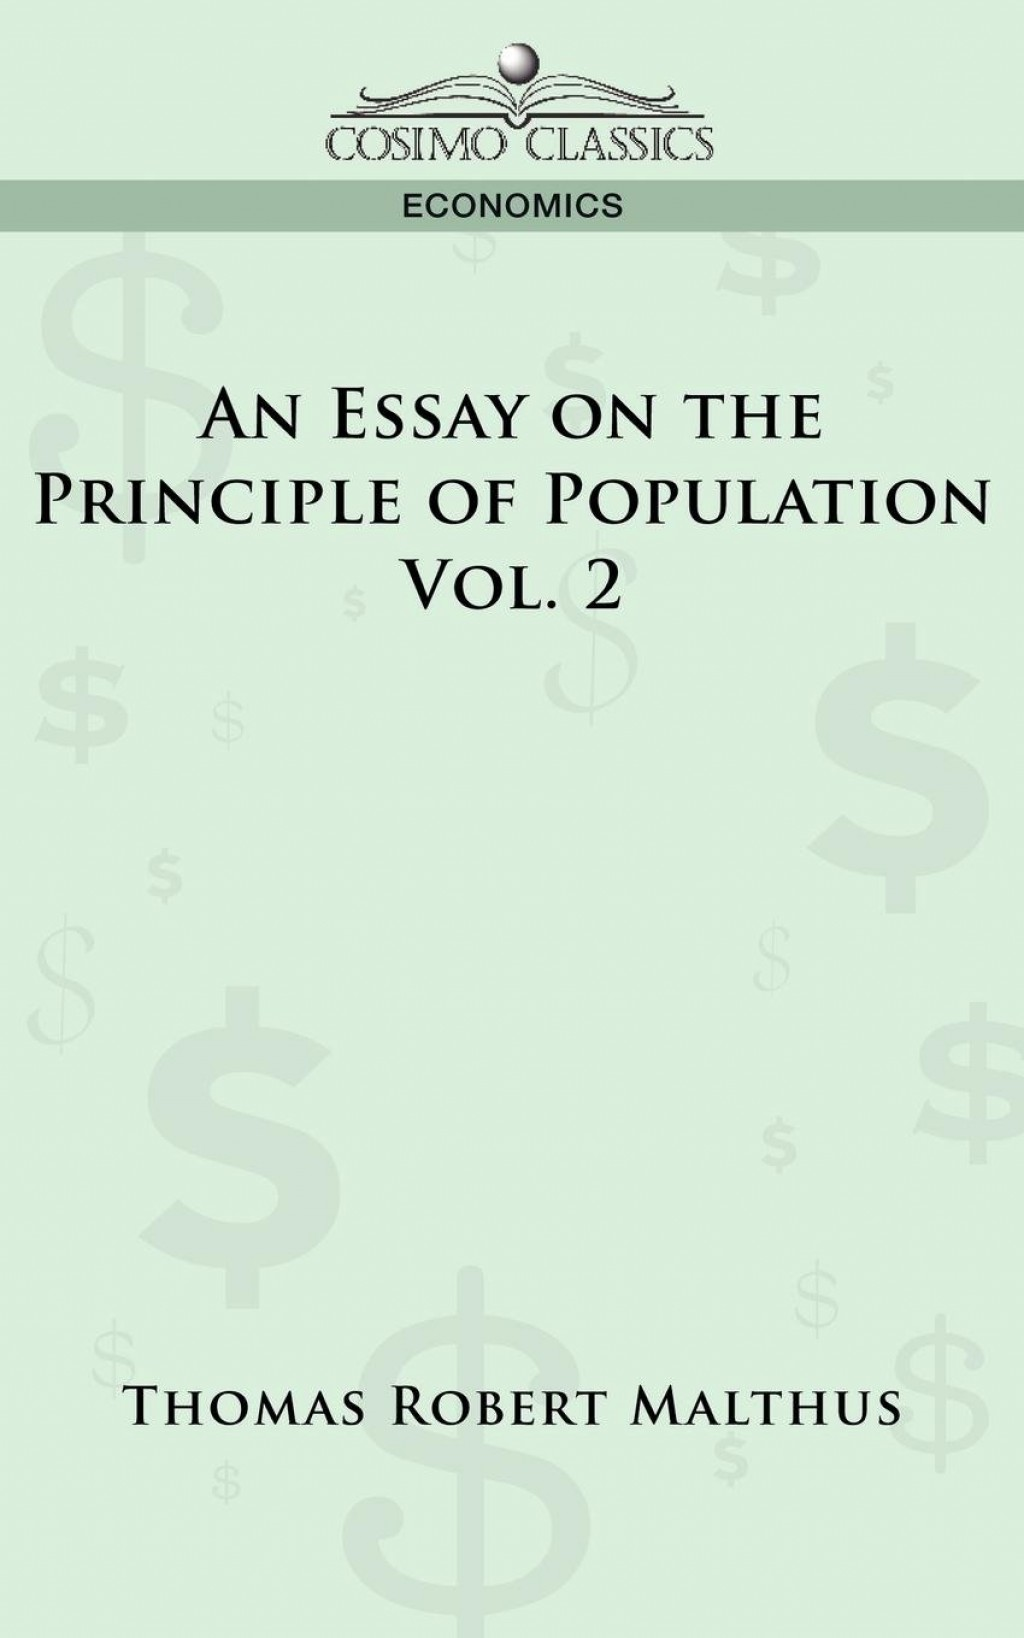 021 Thomas Malthus An Essay On The Principle Of Population Example Marvelous Summary Analysis Argued In His (1798) That Large